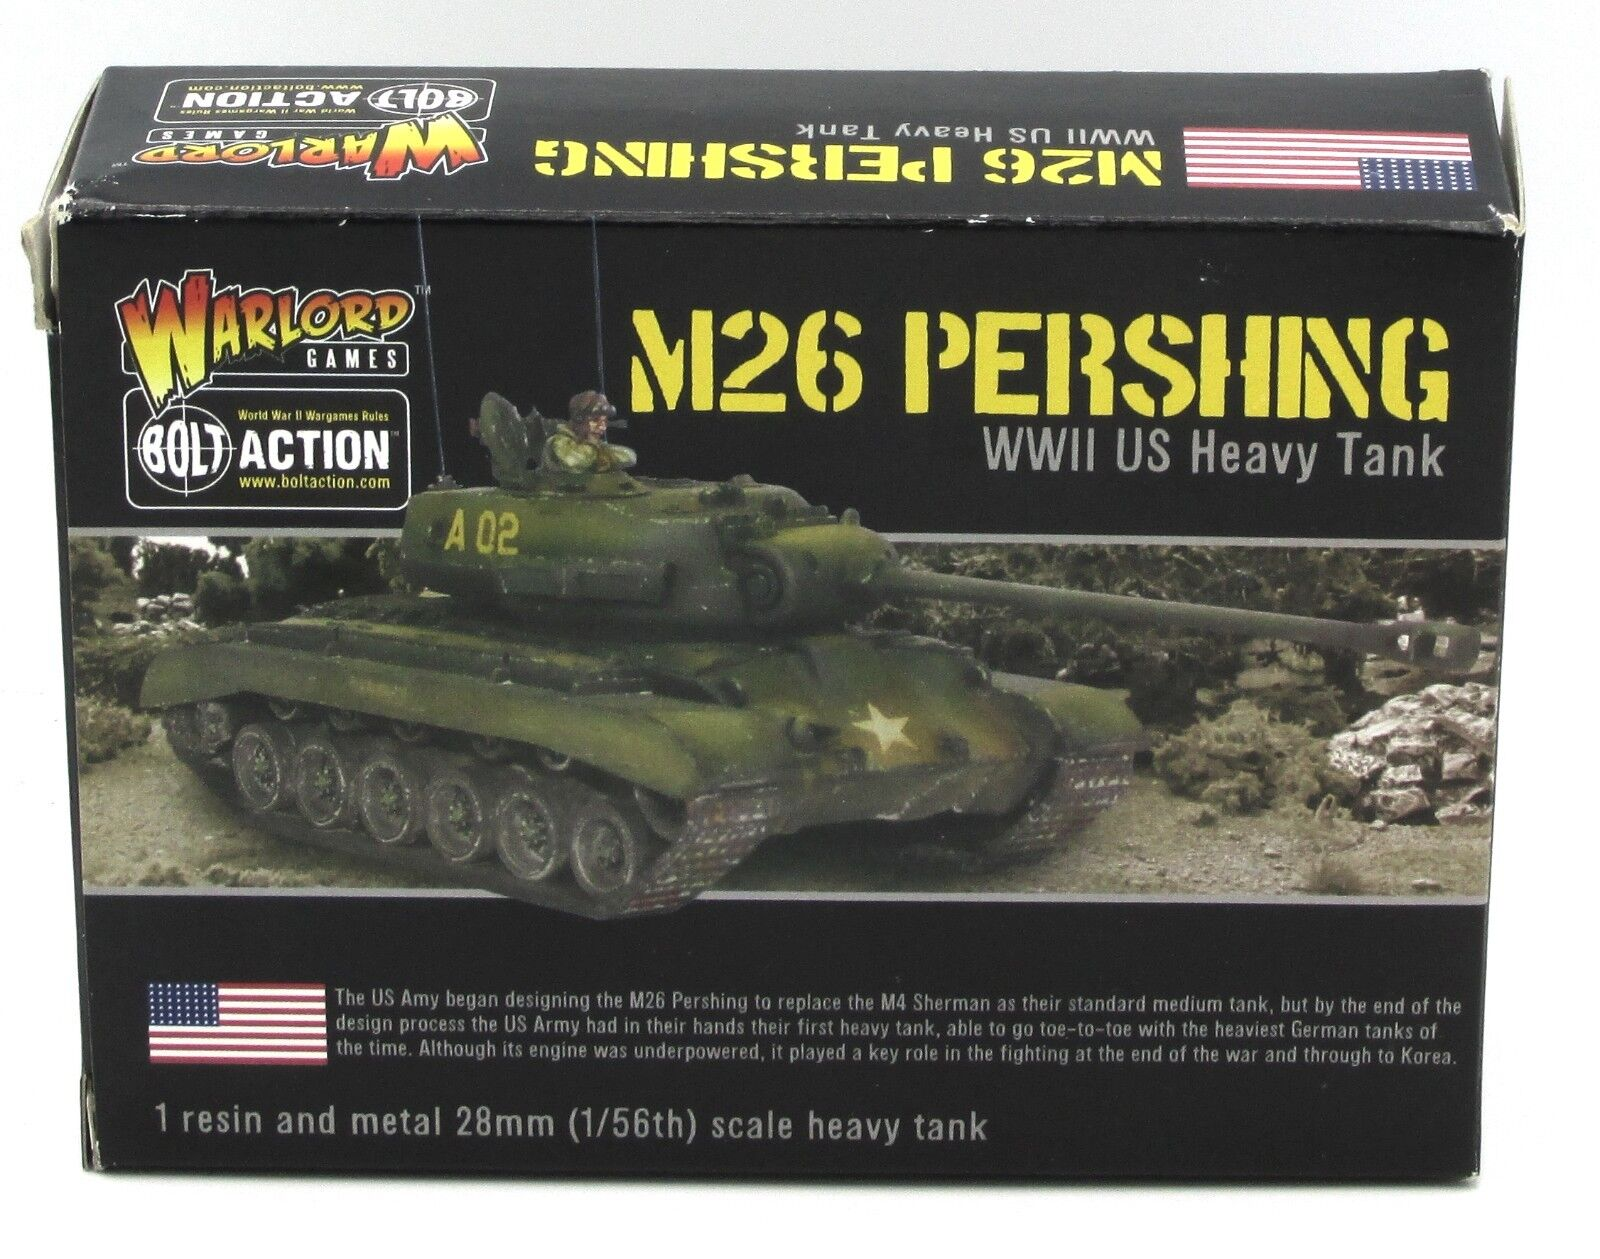 Bolt Action WGB-AI-127 M26 Pershing (WWII US Heavy Tank) Warlord Games Vehicle